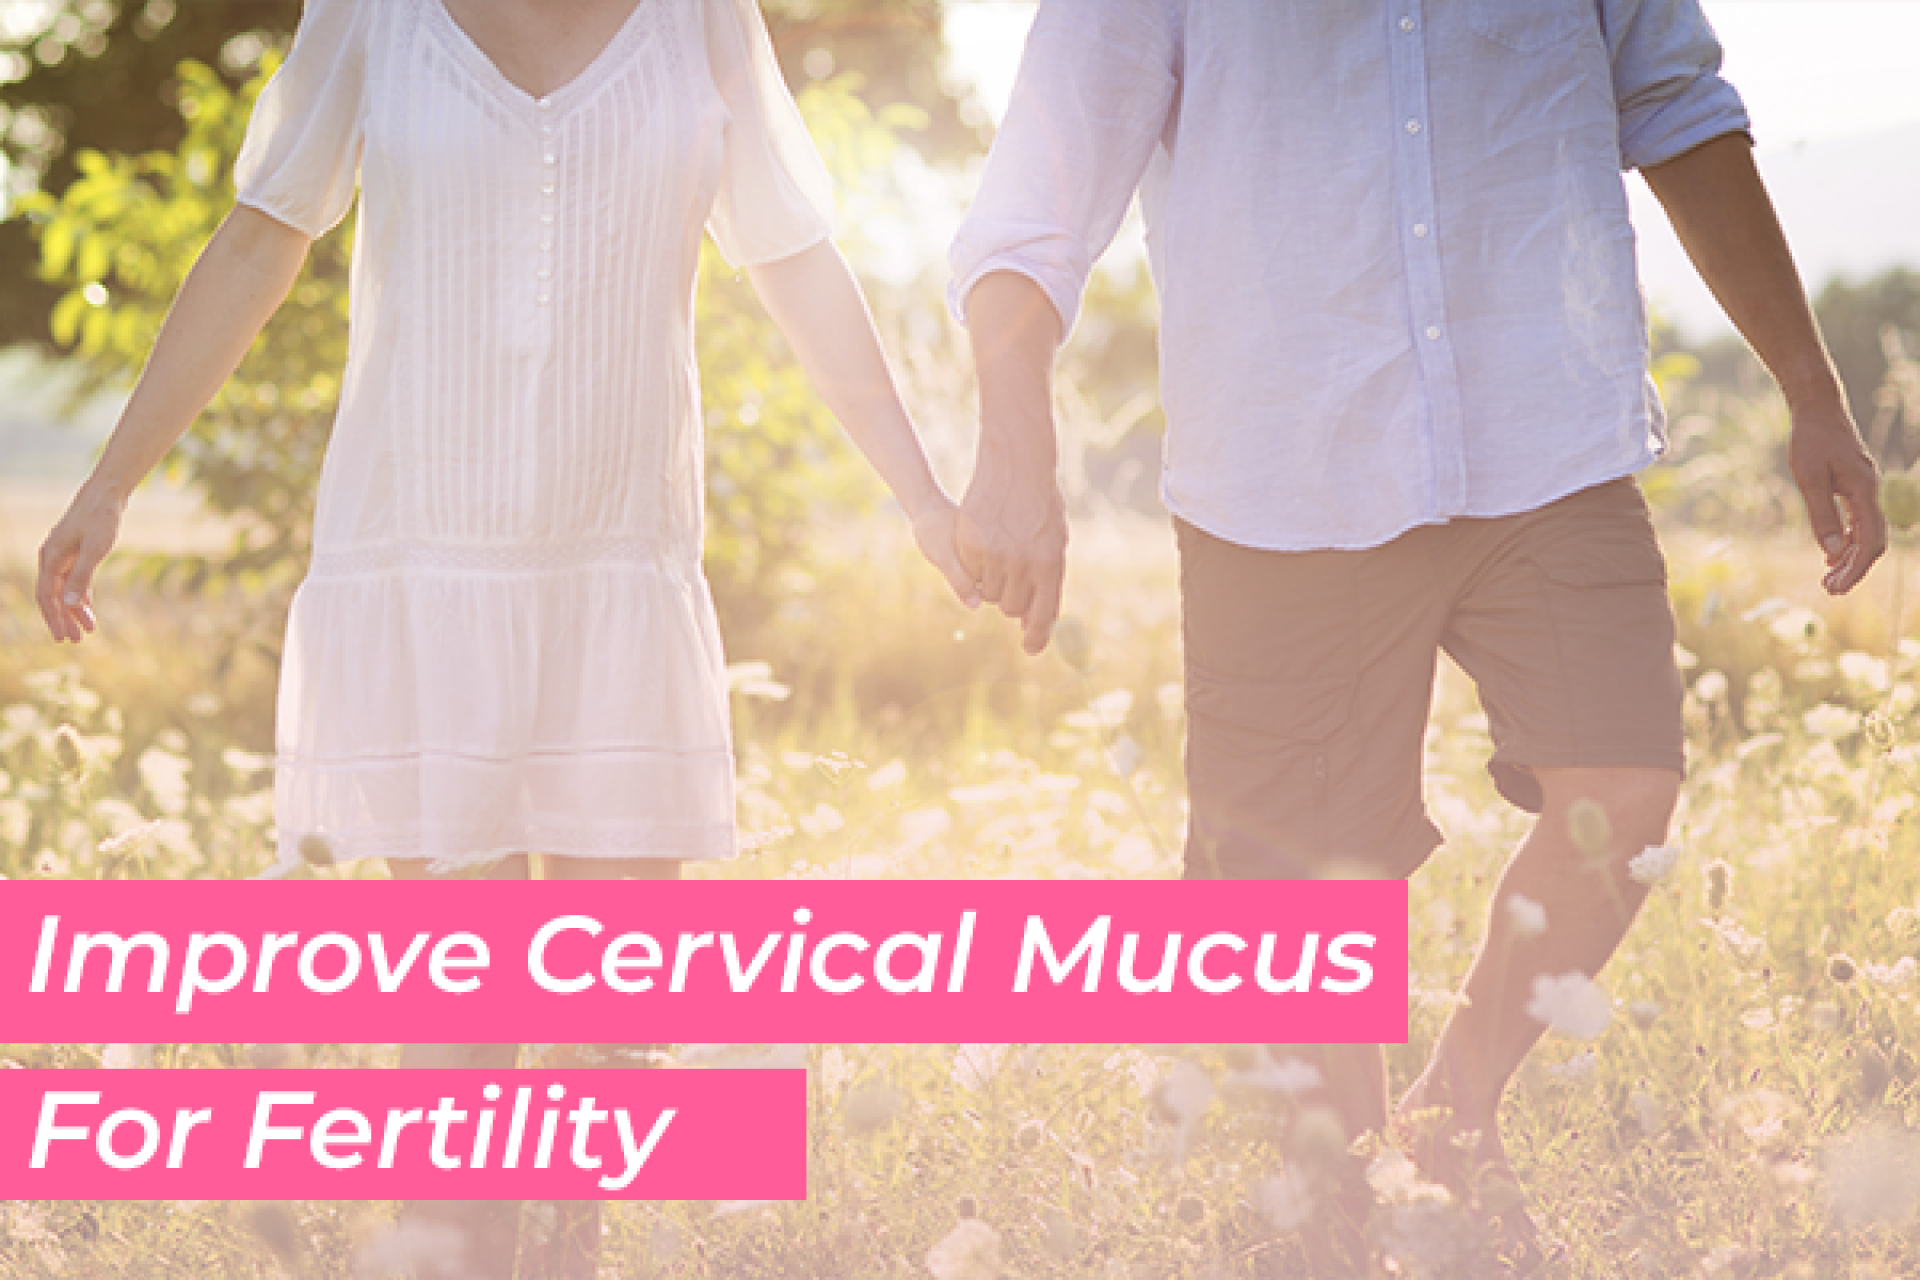 How to Improve your Cervical Mucus for Fertility